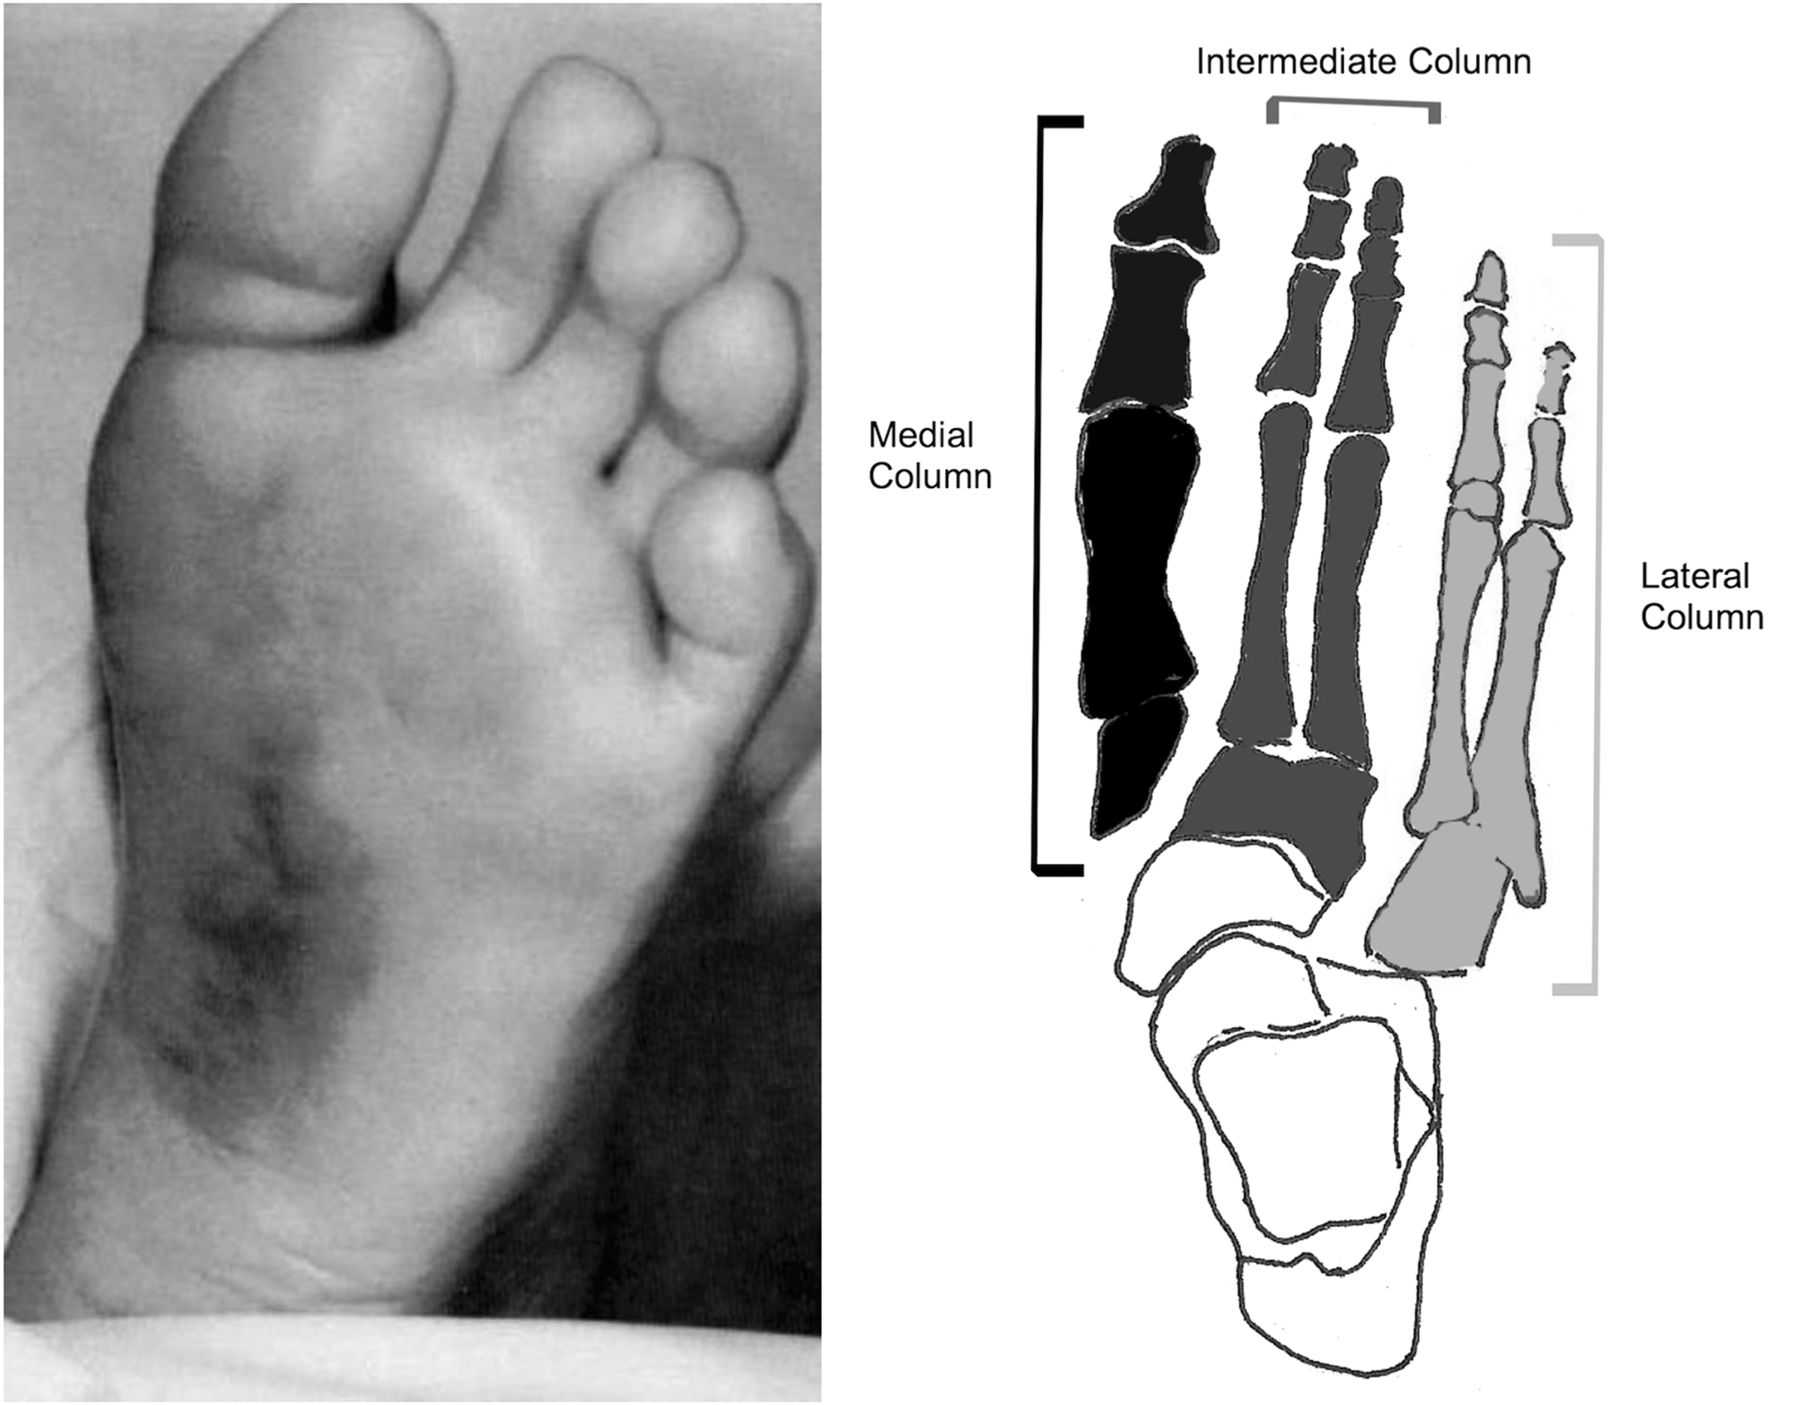 Lisfranc fracture dislocation: a review of a commonly missed injury ...